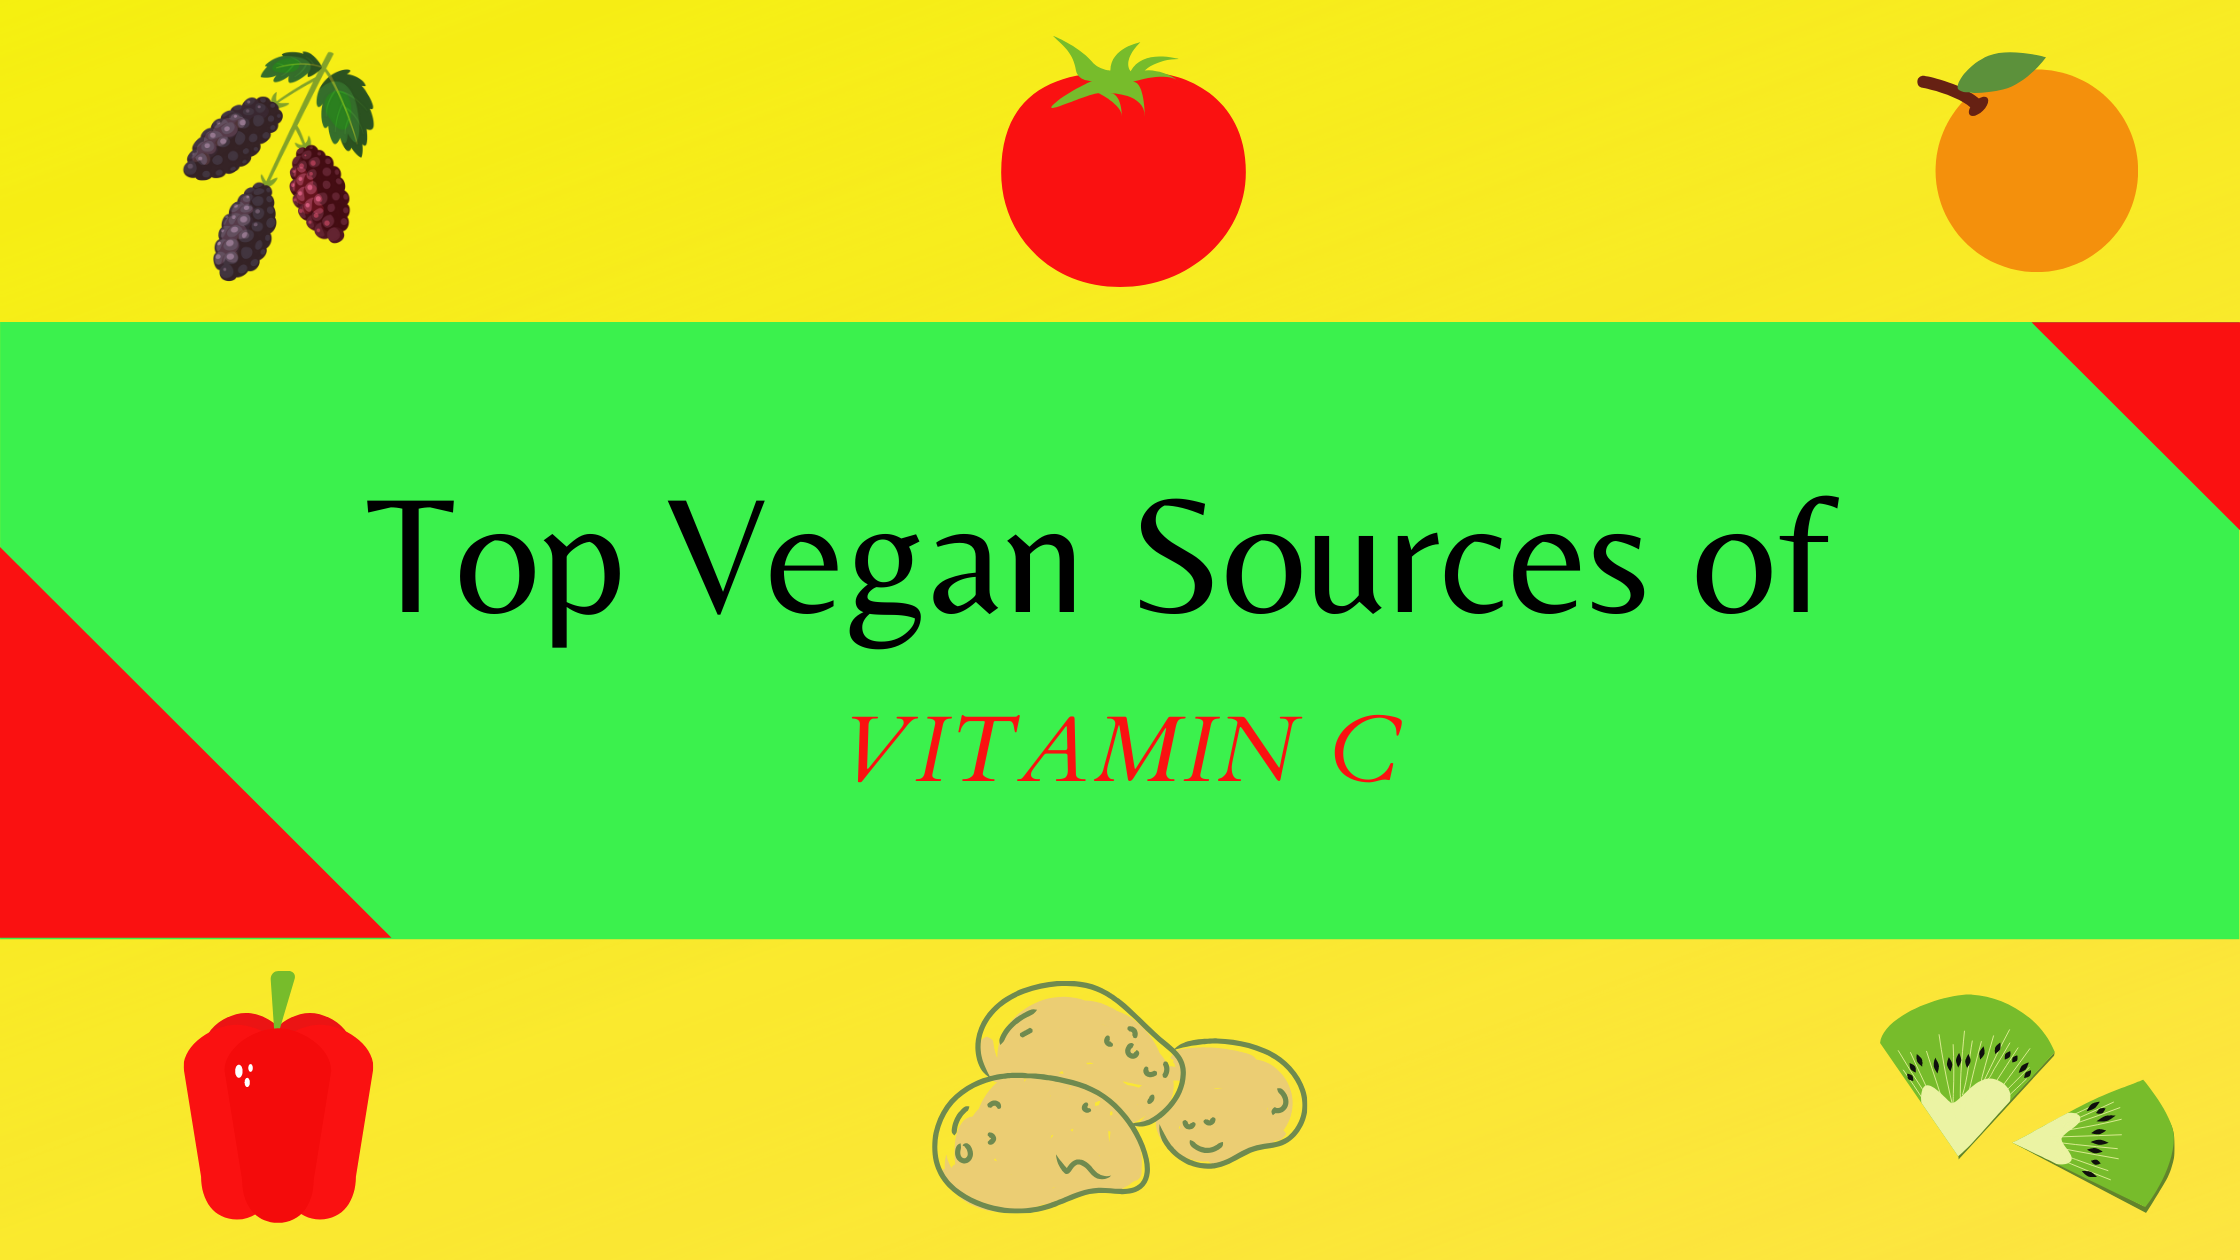 Vitamin C rich food sources